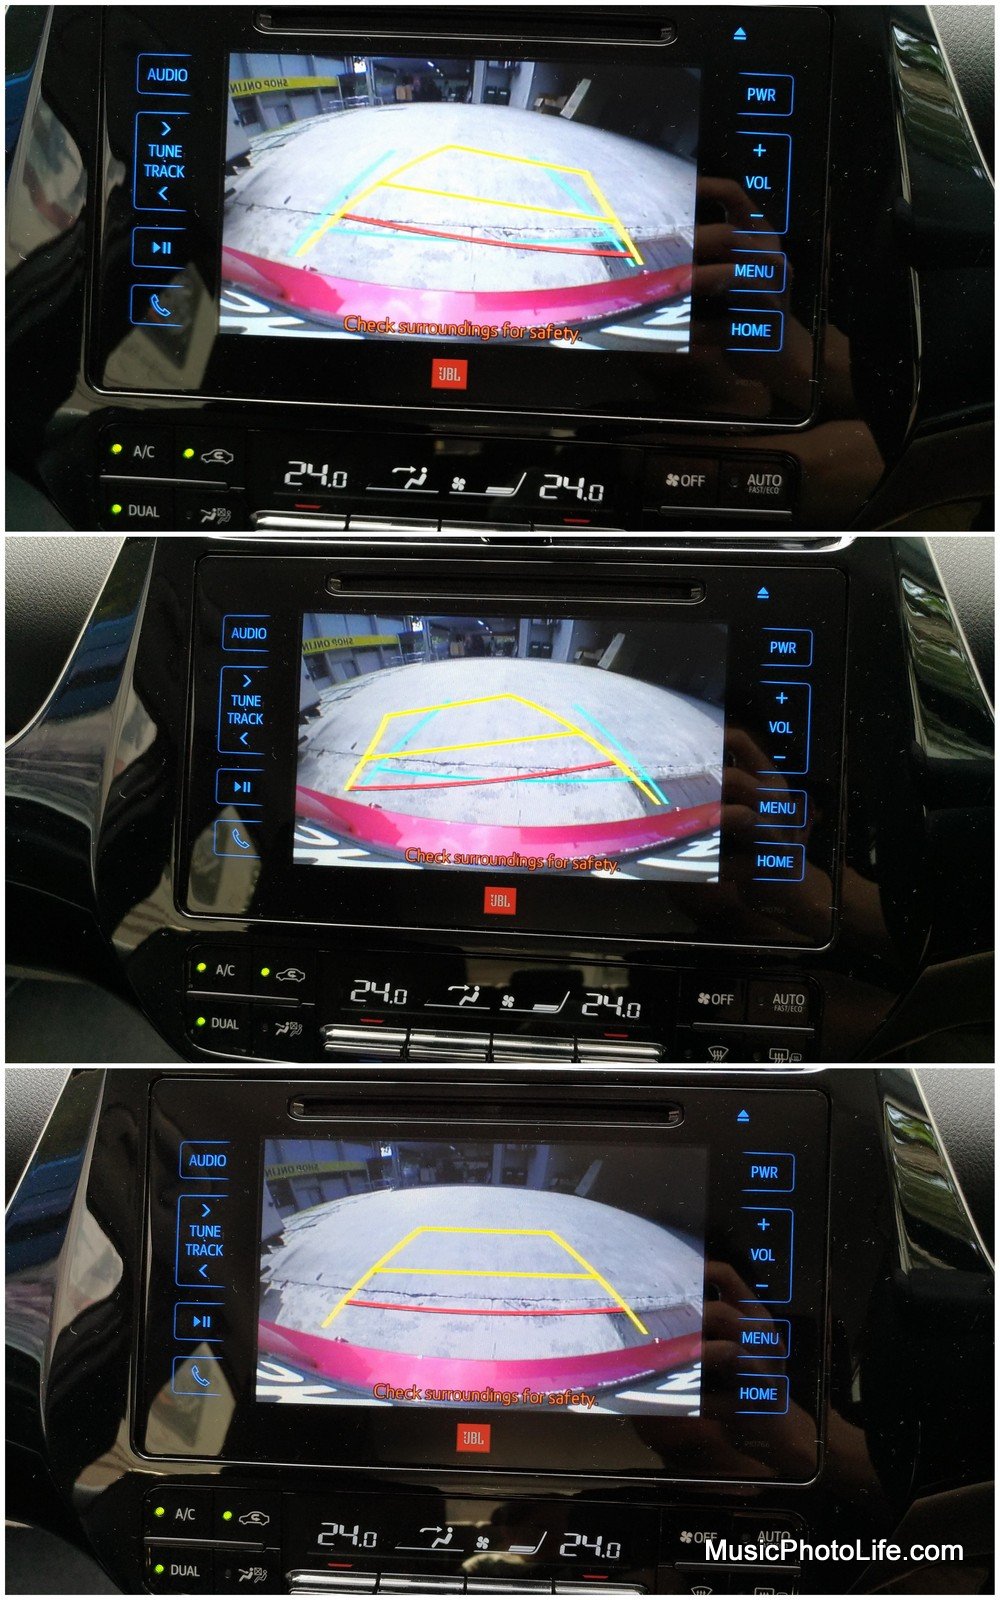 Toyota Prius 2016 reverse camera dynamic guideline